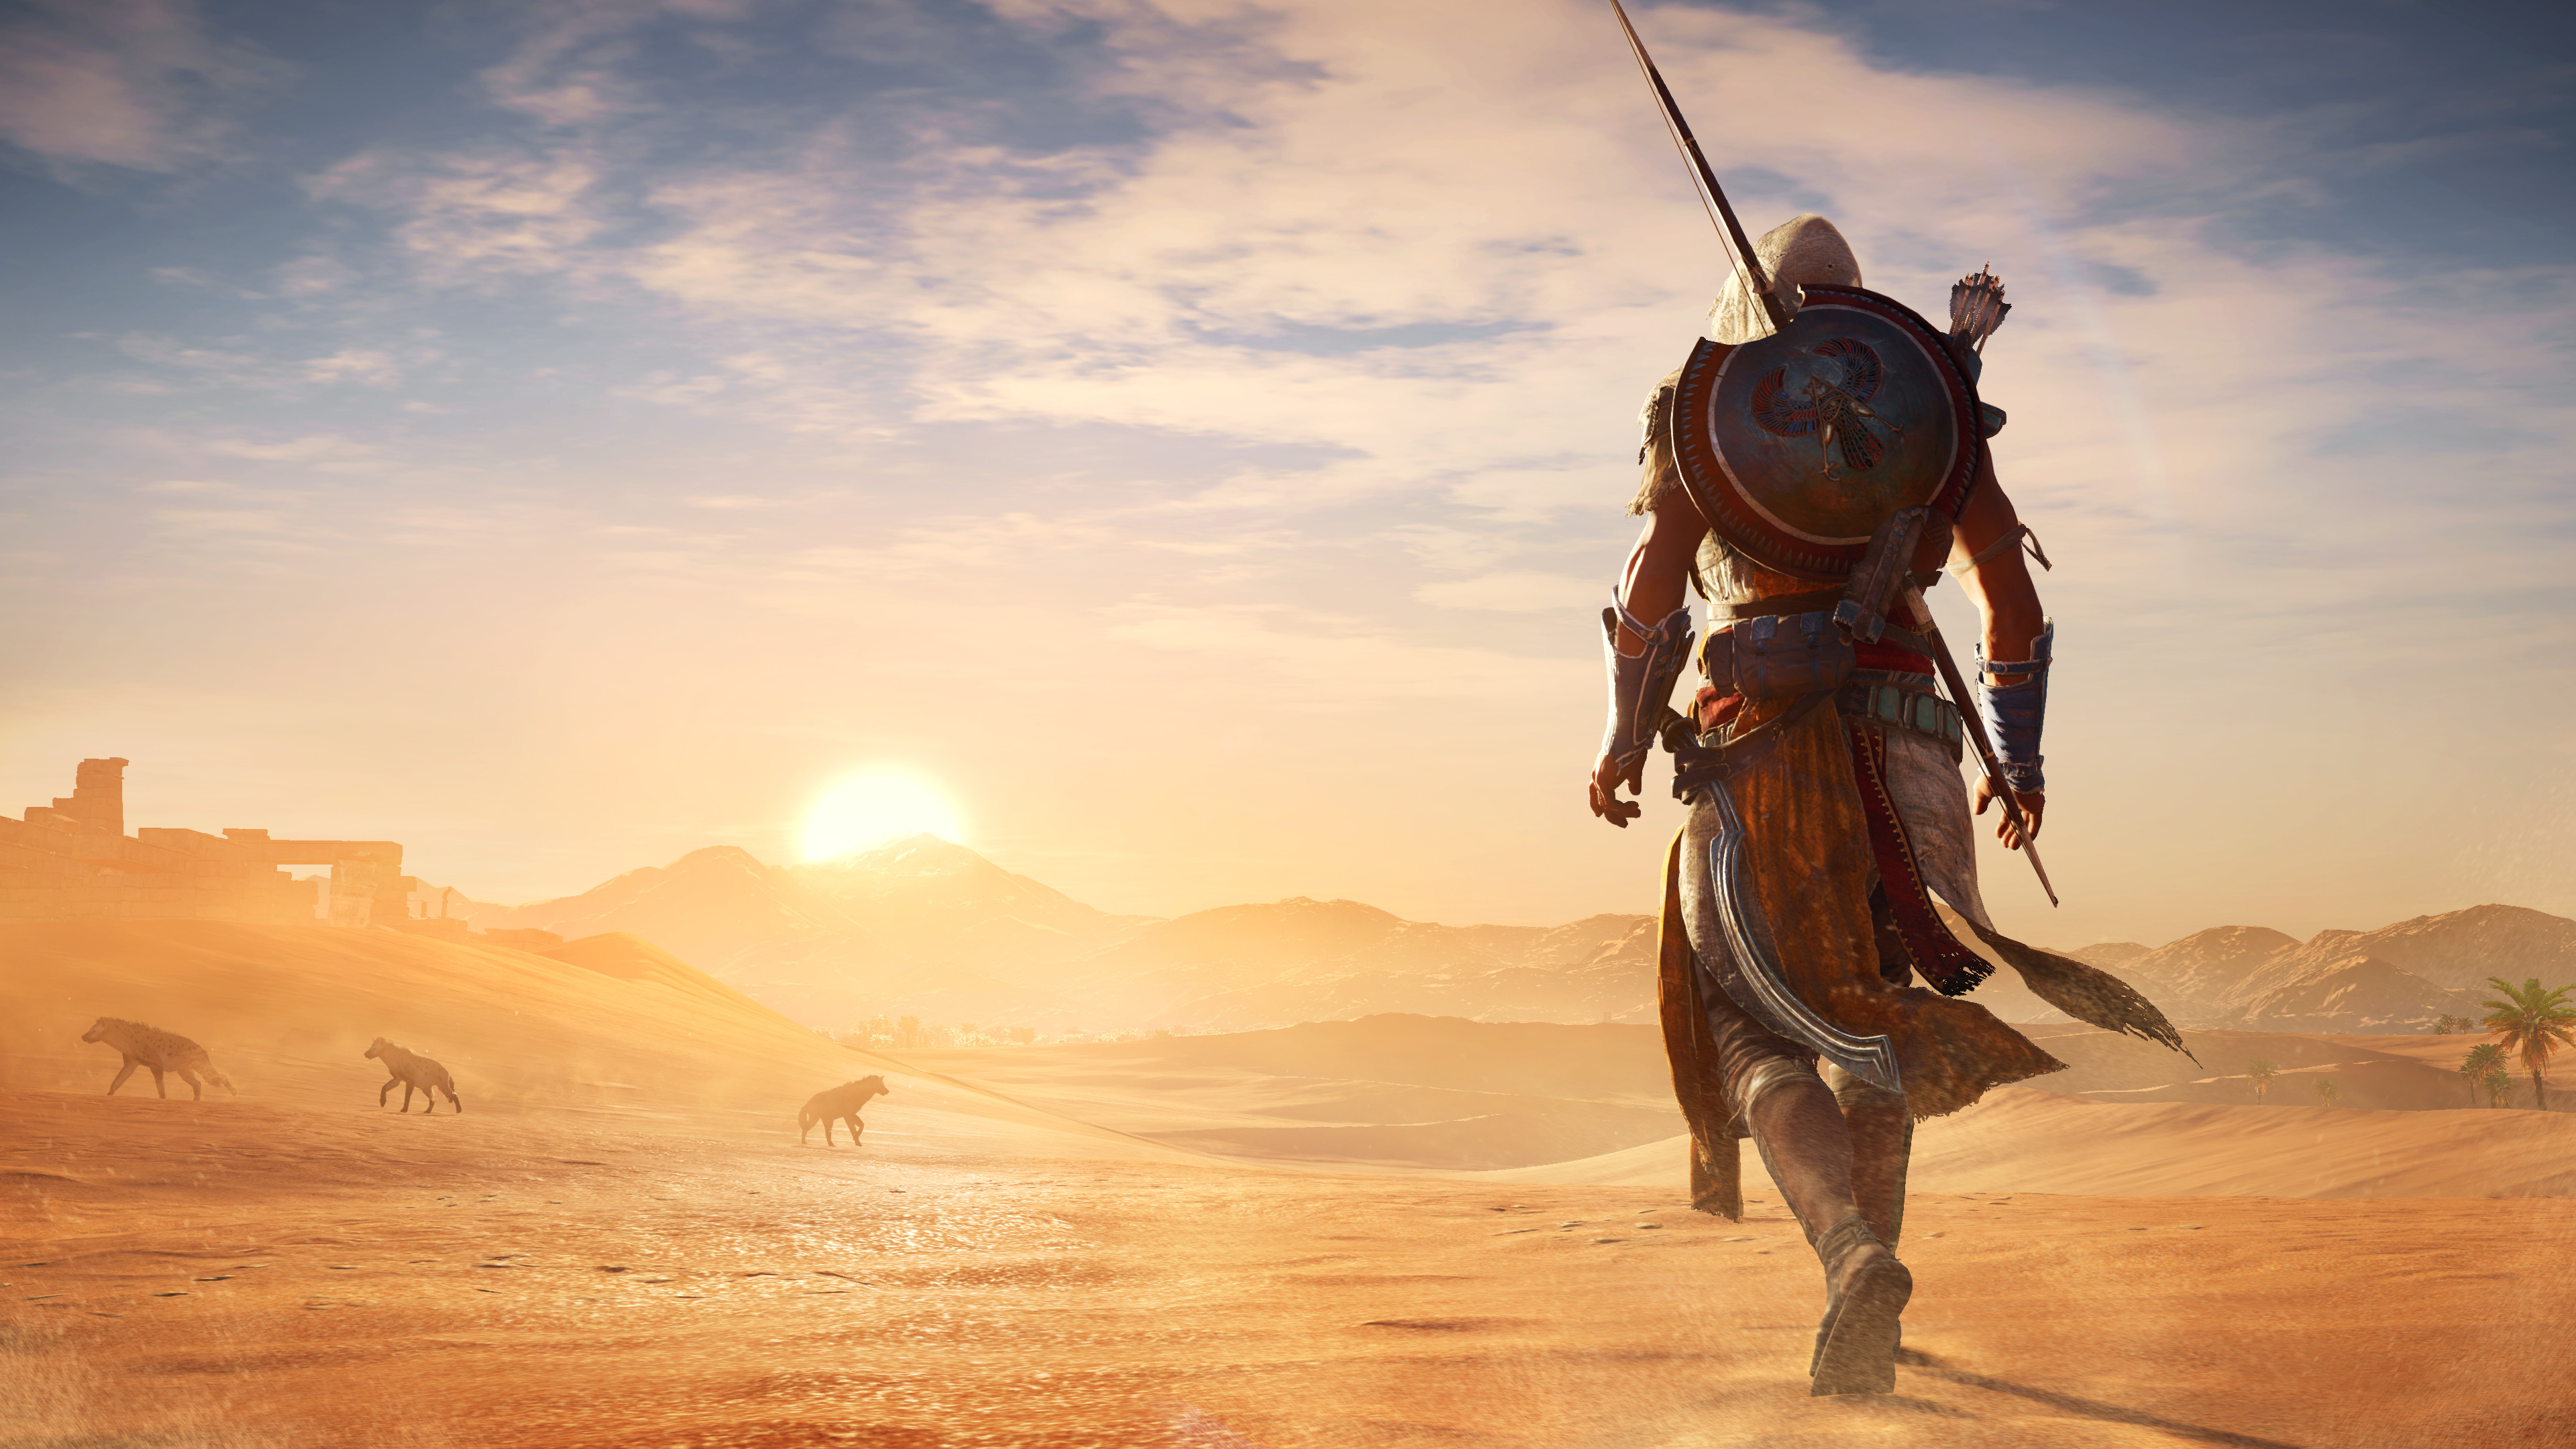 assassins creed origins hd games 4k wallpapers images